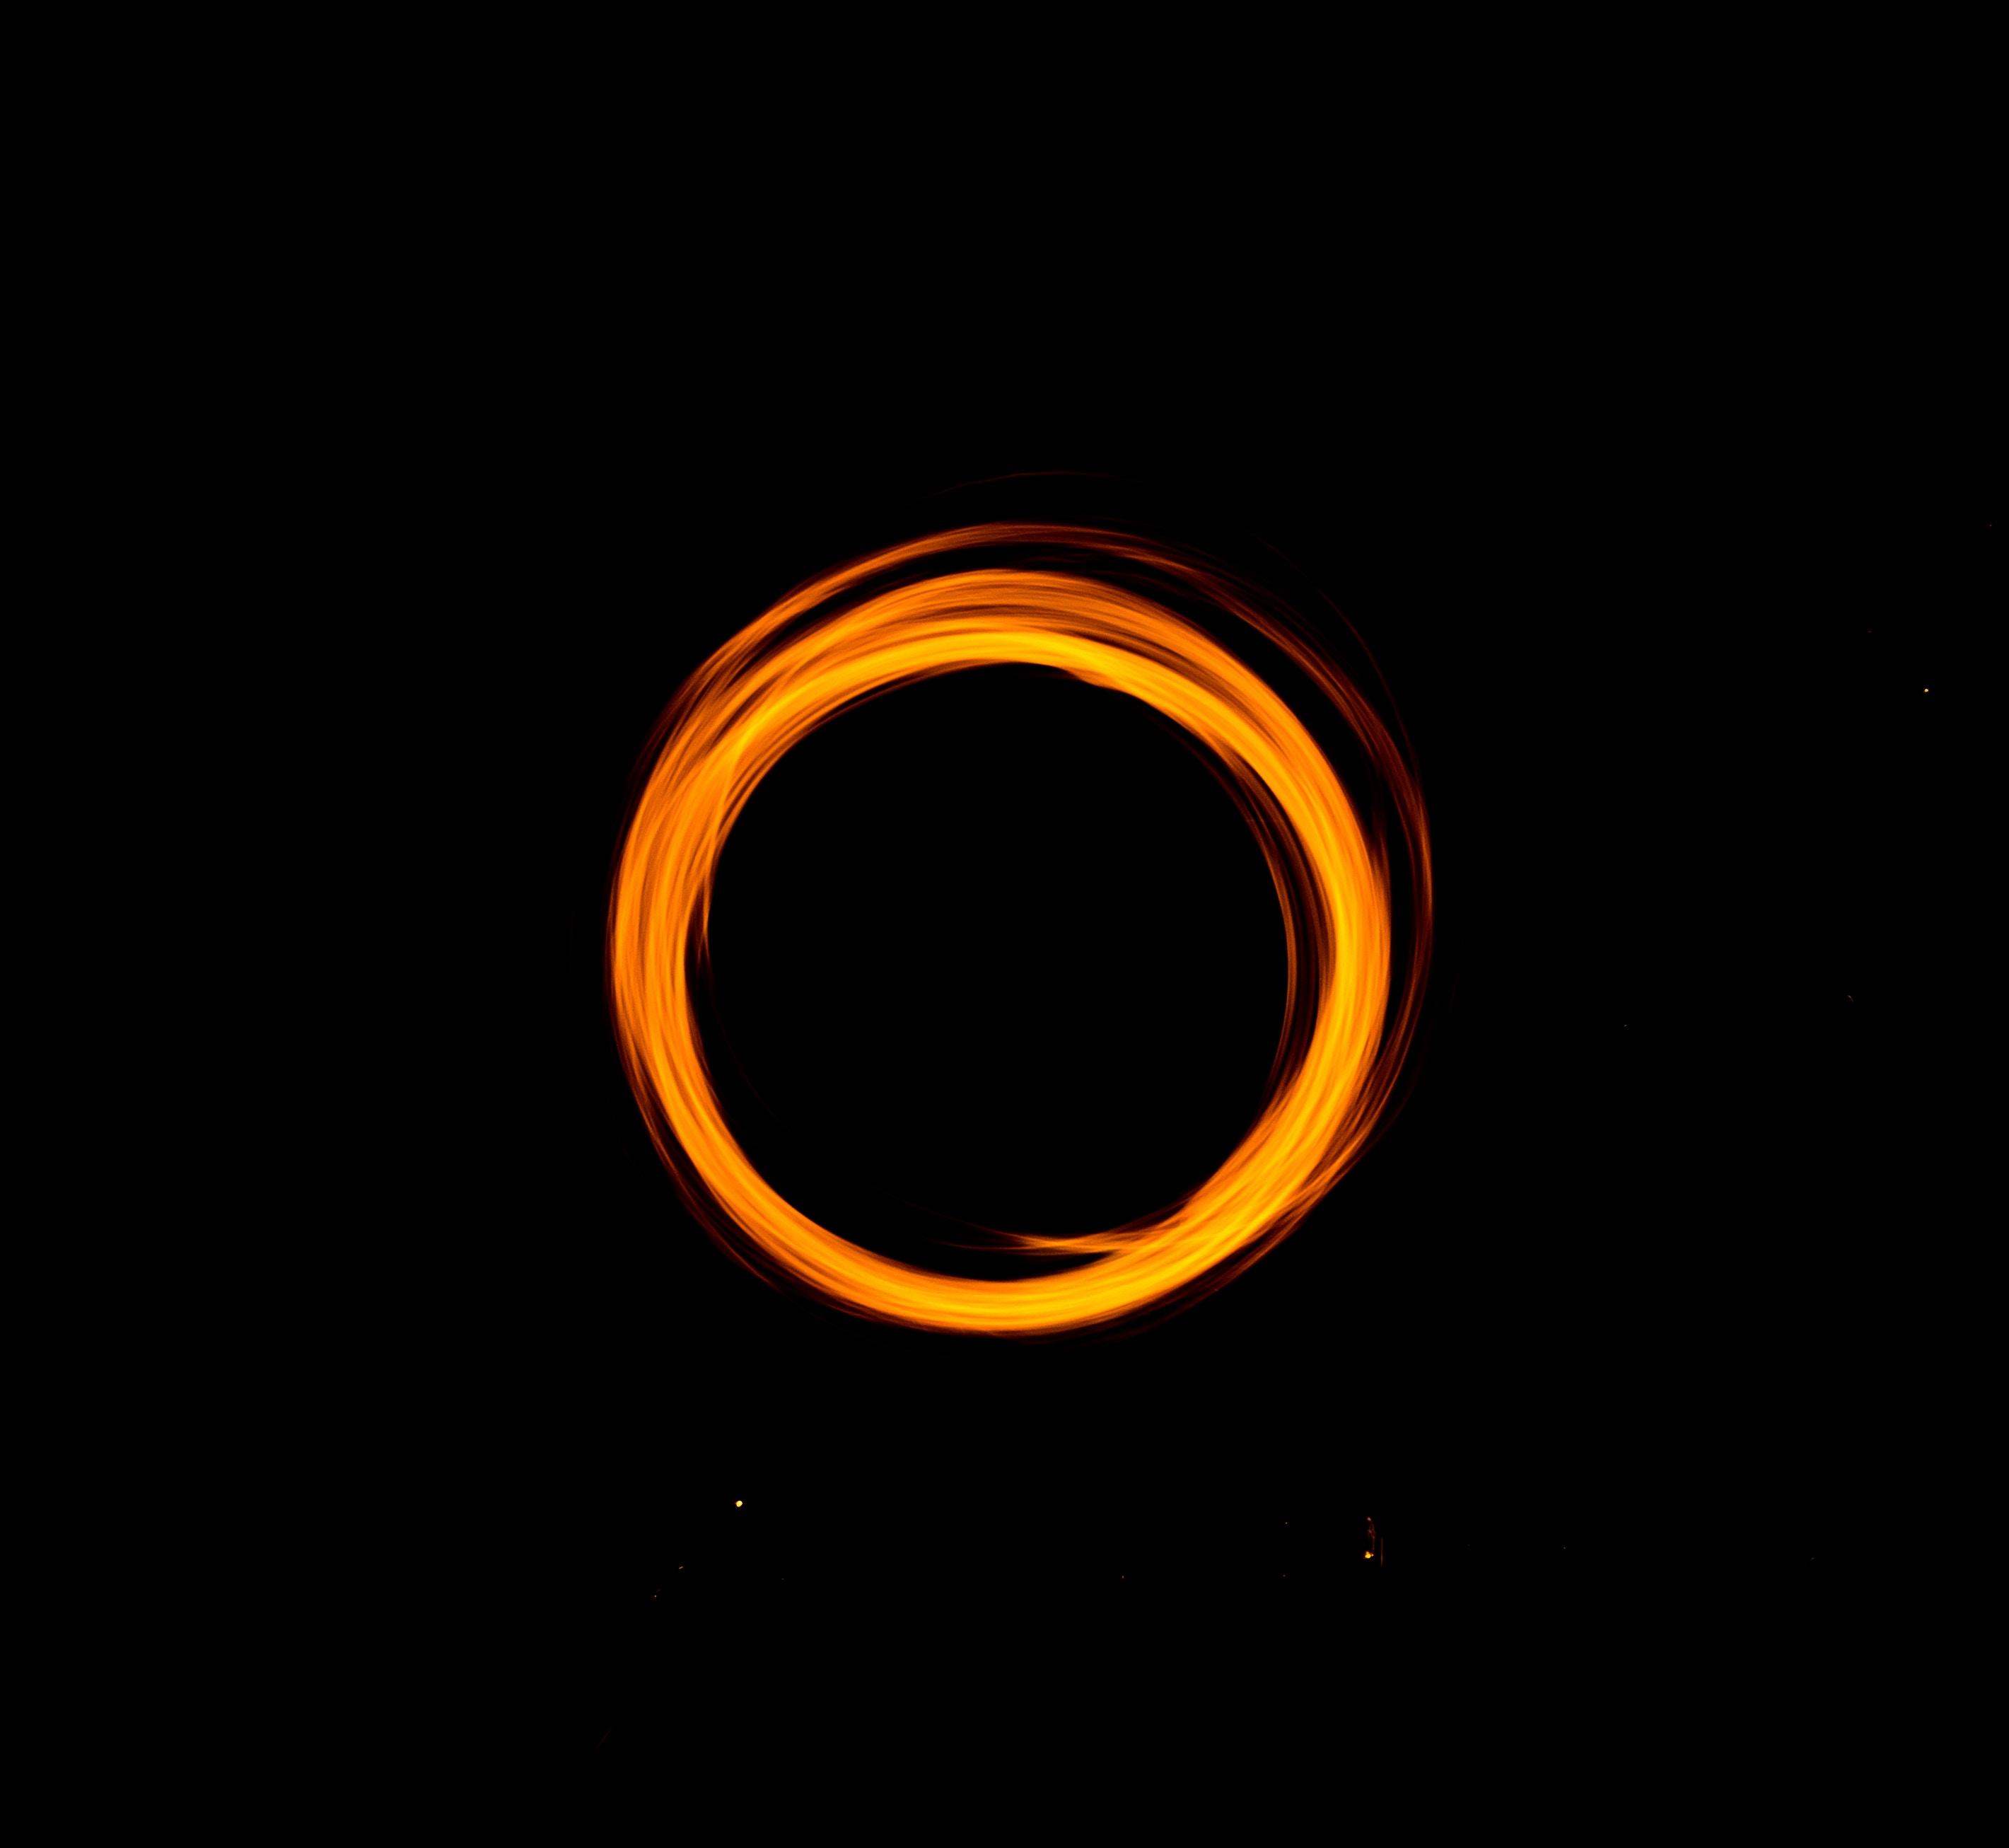 76240 download wallpaper Abstract, Shine, Light, Dark Background, Circle, Portal screensavers and pictures for free